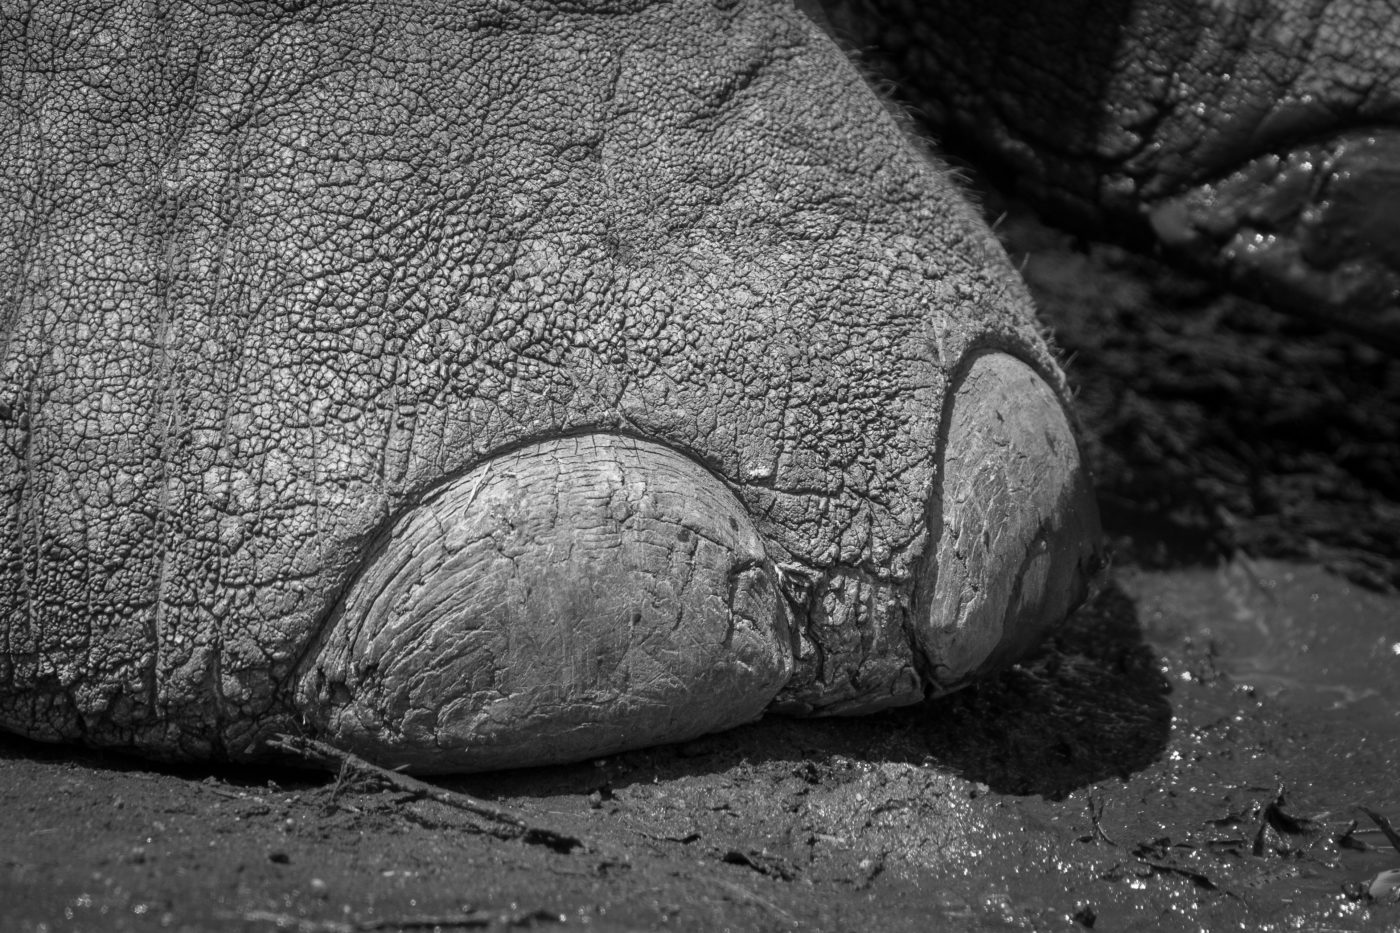 sale retailer 17682 3629e Toenails in the mud and fine textures of skin. Toenails of an elephant are  often over-looked and are fascinating yet seemingly bizarre.